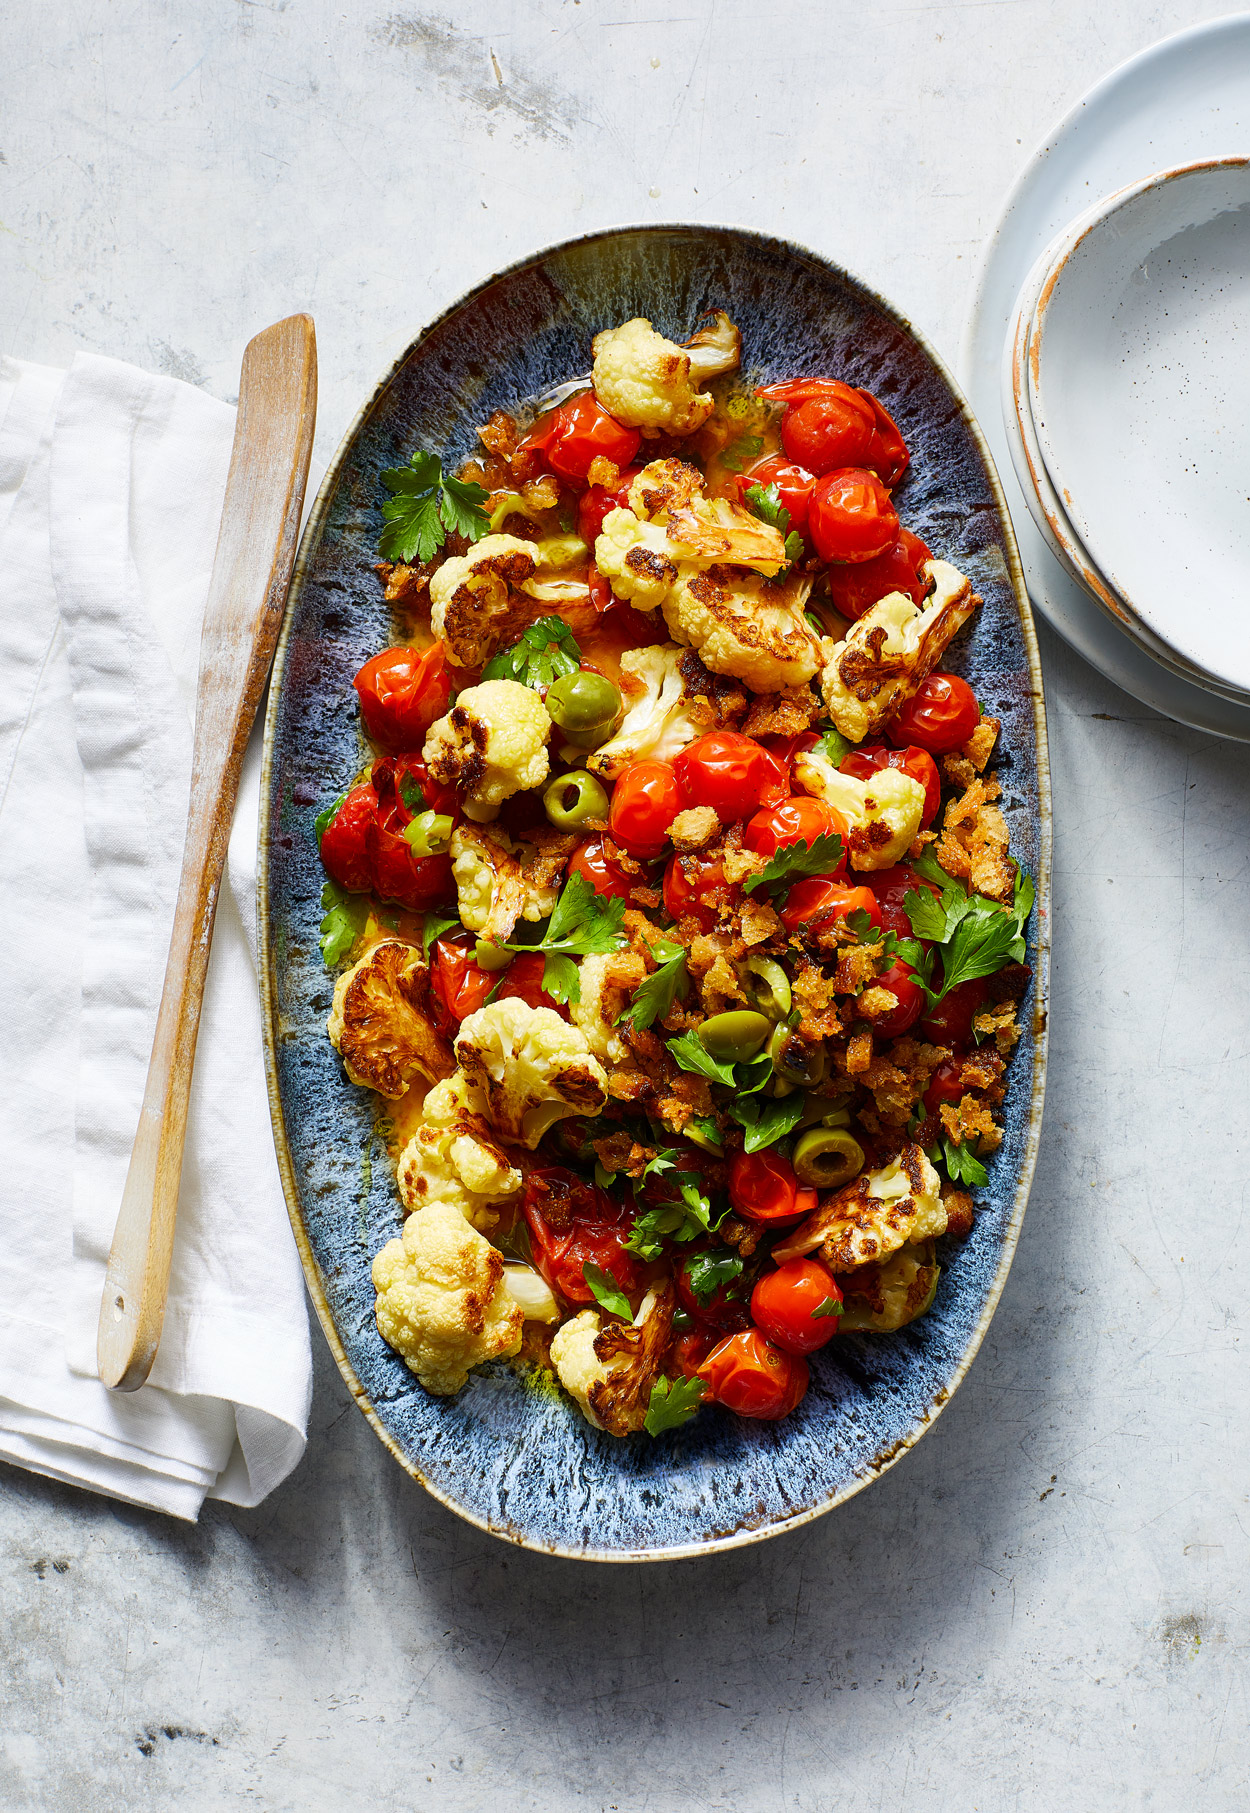 oval dish of Roasted Cauliflower and Tomatoes with Olives and Garlic Breadcrumbs